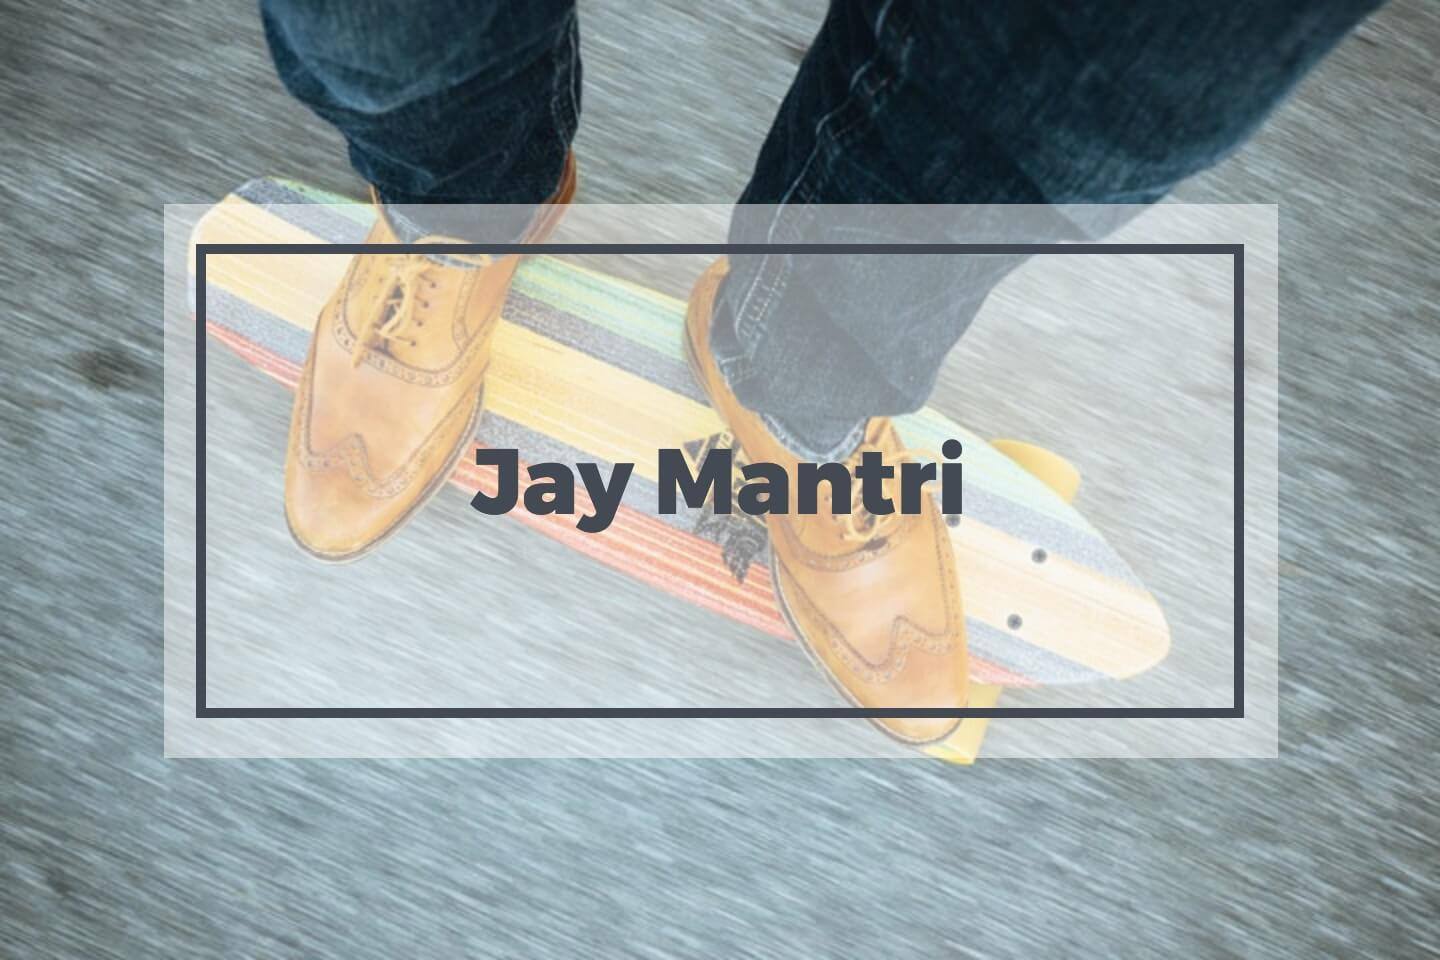 Jay Mantri free stock photos